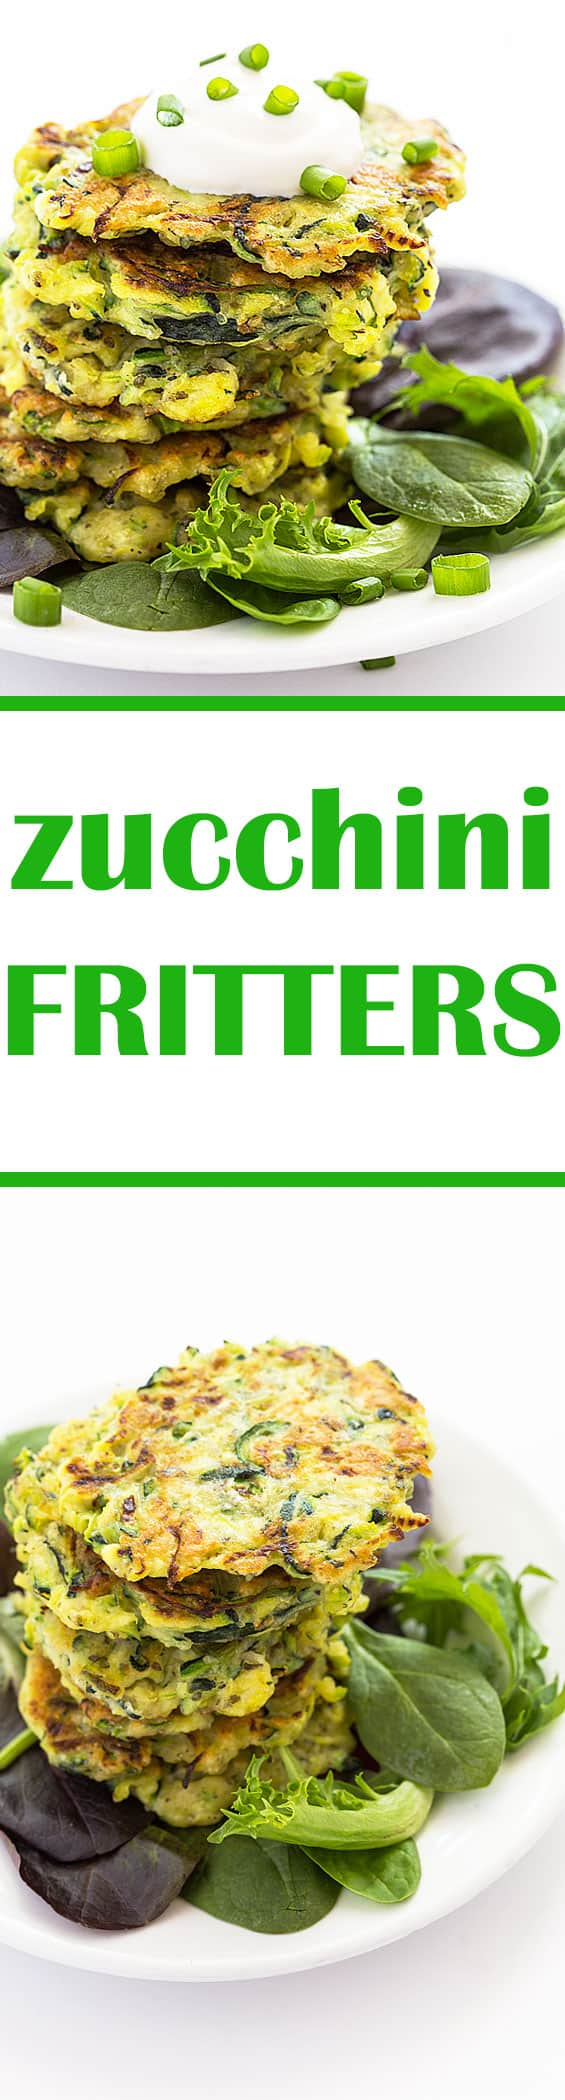 A two image collage of zucchini fritters with overlay text in the center.